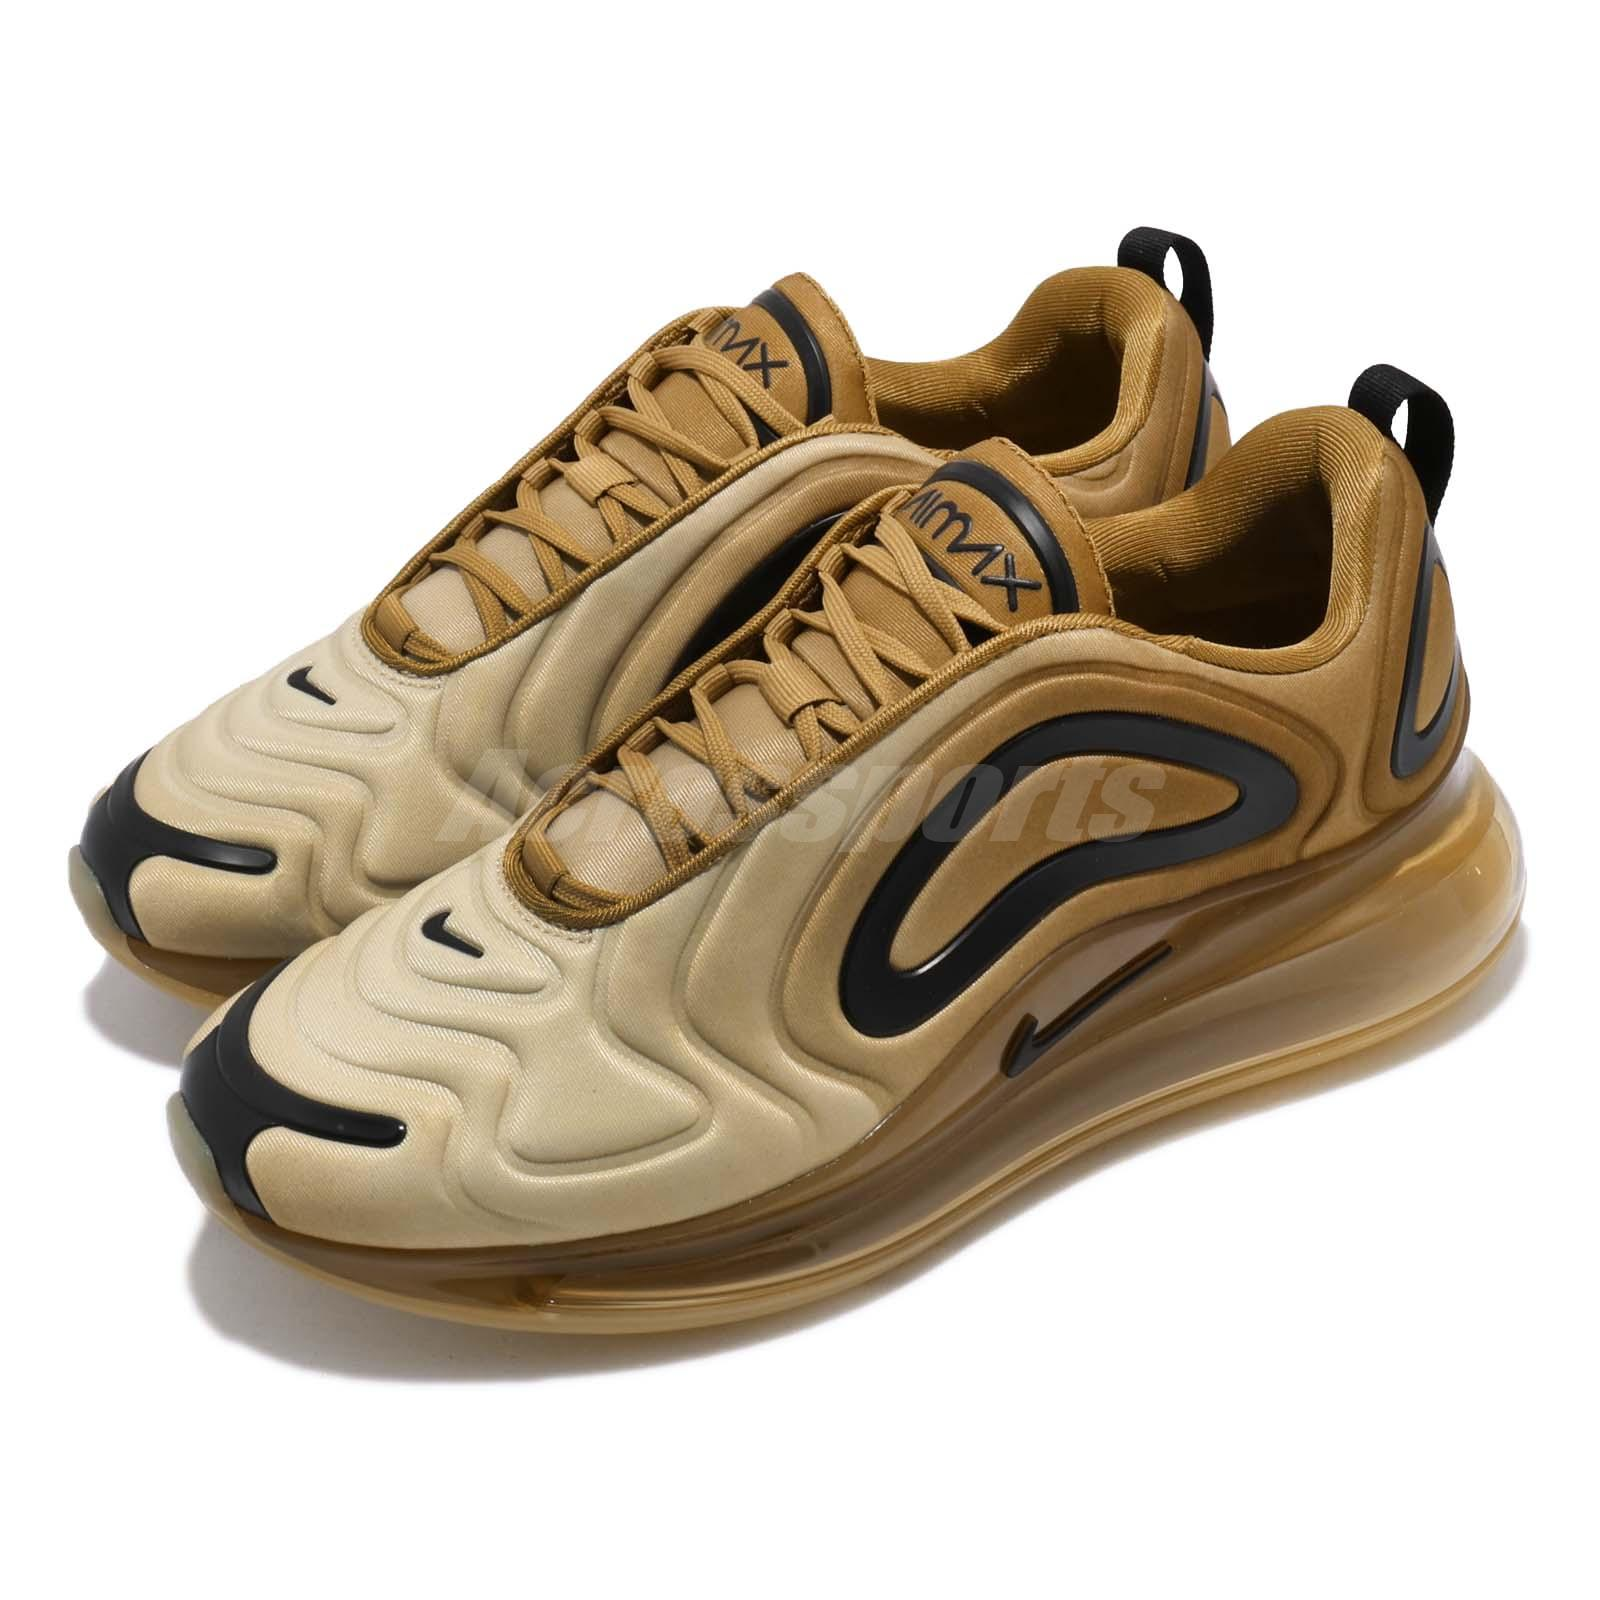 size 40 4b5ea ce637 Details about Nike Air Max 720 Desert Gold Wheat Black Men Running Shoes  Sneakers AO2924-700